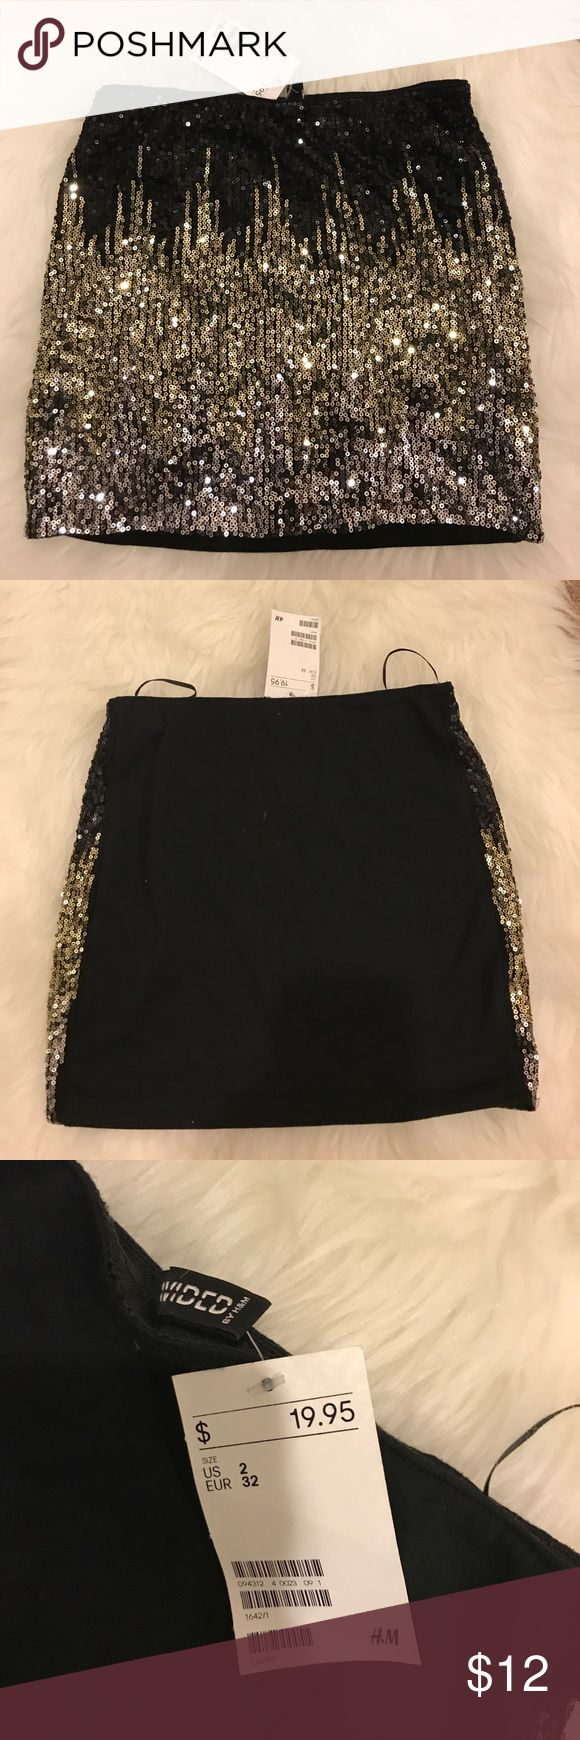 Soft gold and black sequin skirt size 2 New with tag, black and gold sequin skirt Skirts Mini